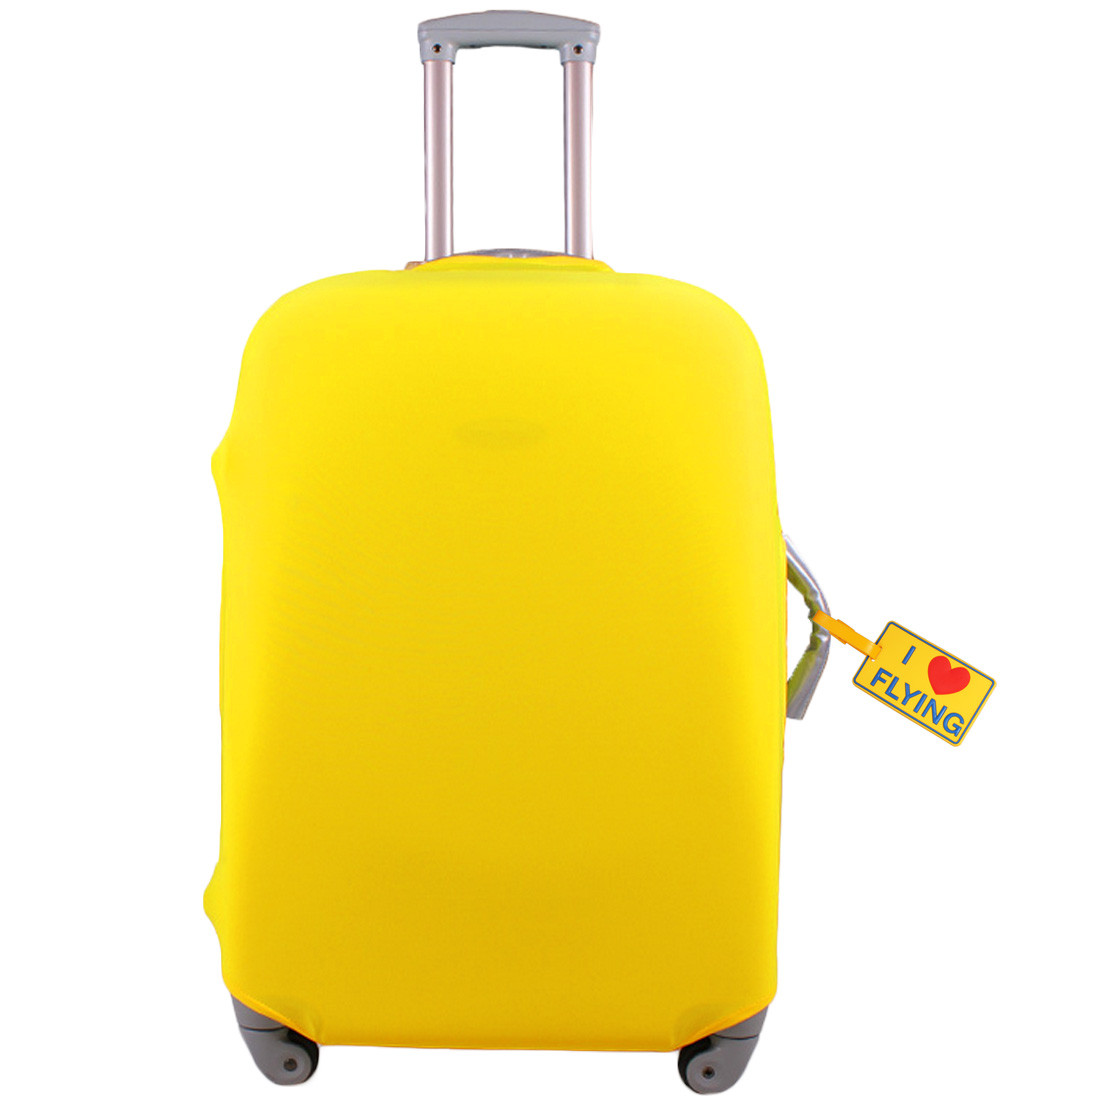 0f922d068619 kilofly Travel Suitcase Trolley Case Cover Protector 18 - 30 Inch and  Luggage Tag